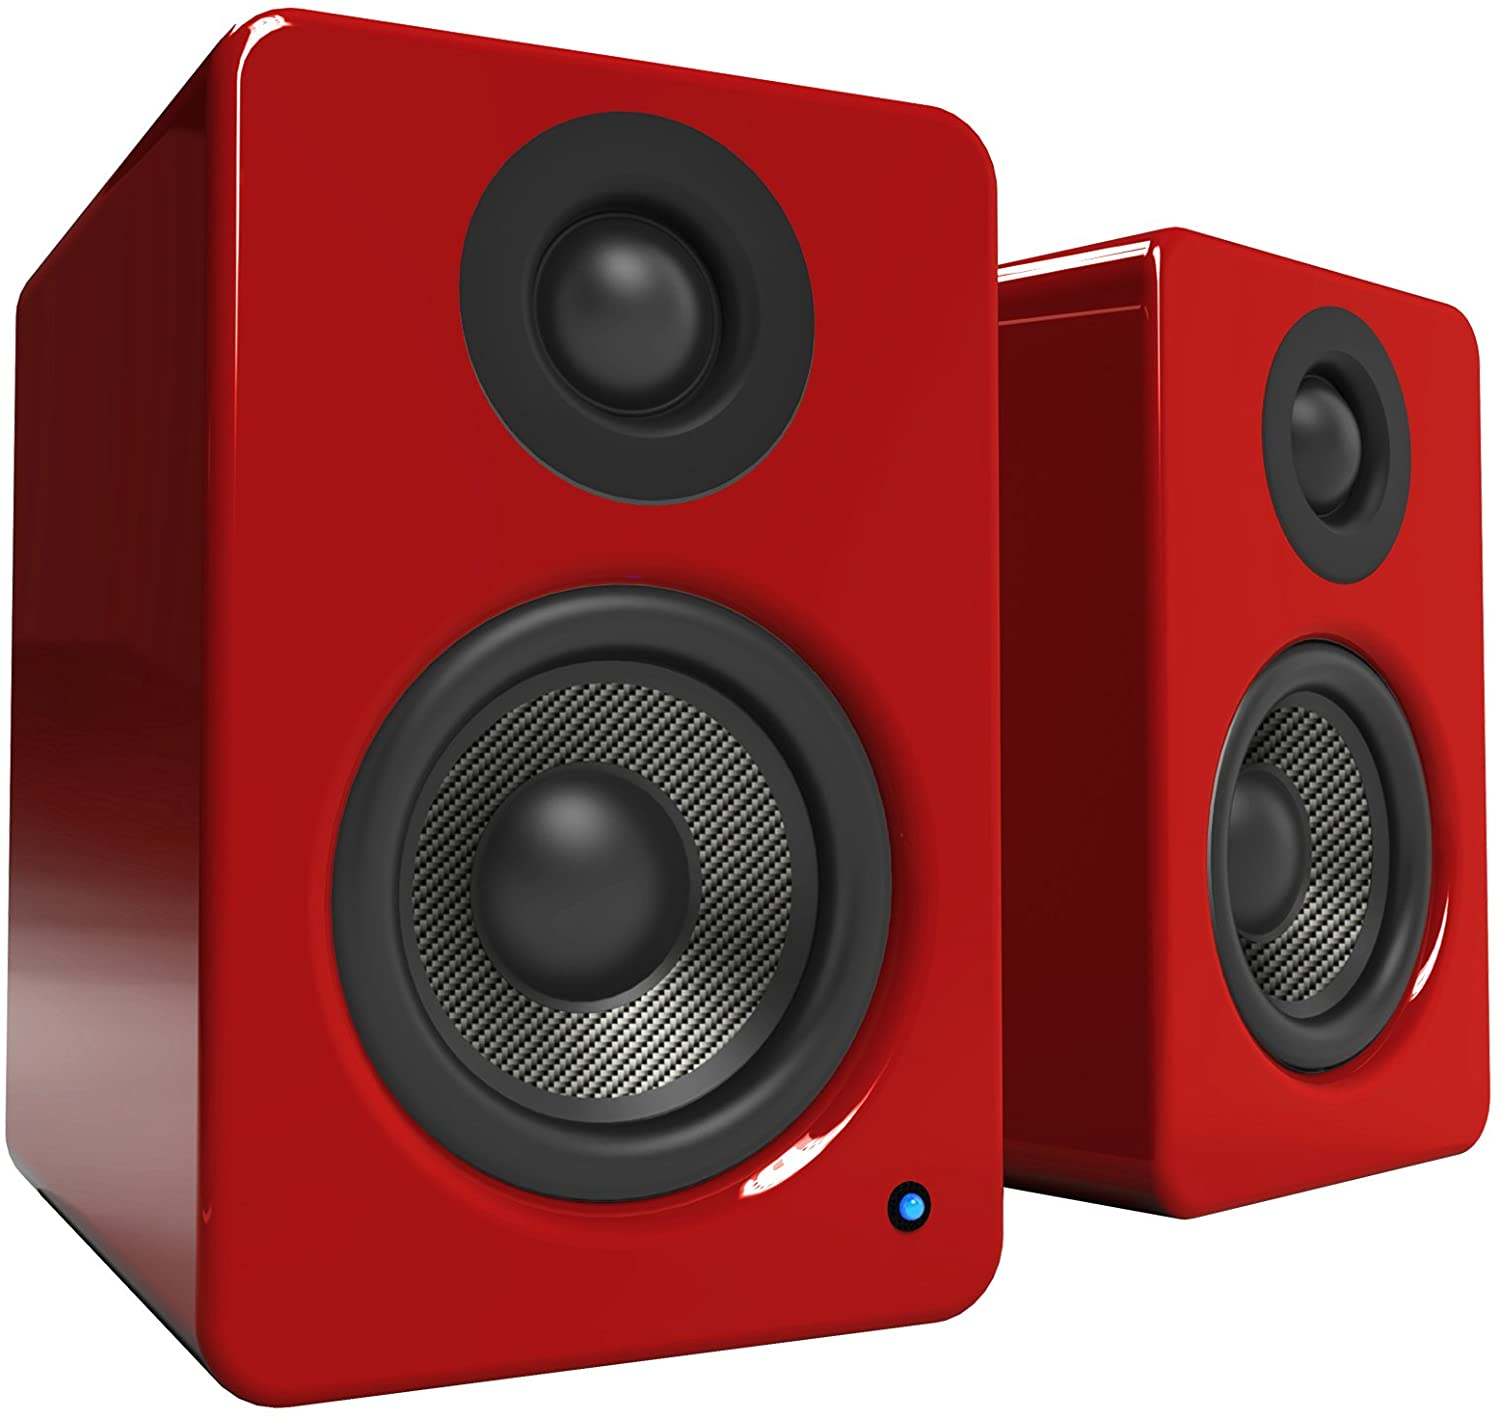 """Kanto 2 Channel Powered PC Gaming Desktop Speakers – 3"""" Composite Drivers 3/4"""" Silk Dome Tweeter – Class D Amplifier - 100 Watts - Built-in USB DAC - Subwoofer Output - YU2GR (Gloss Red)"""